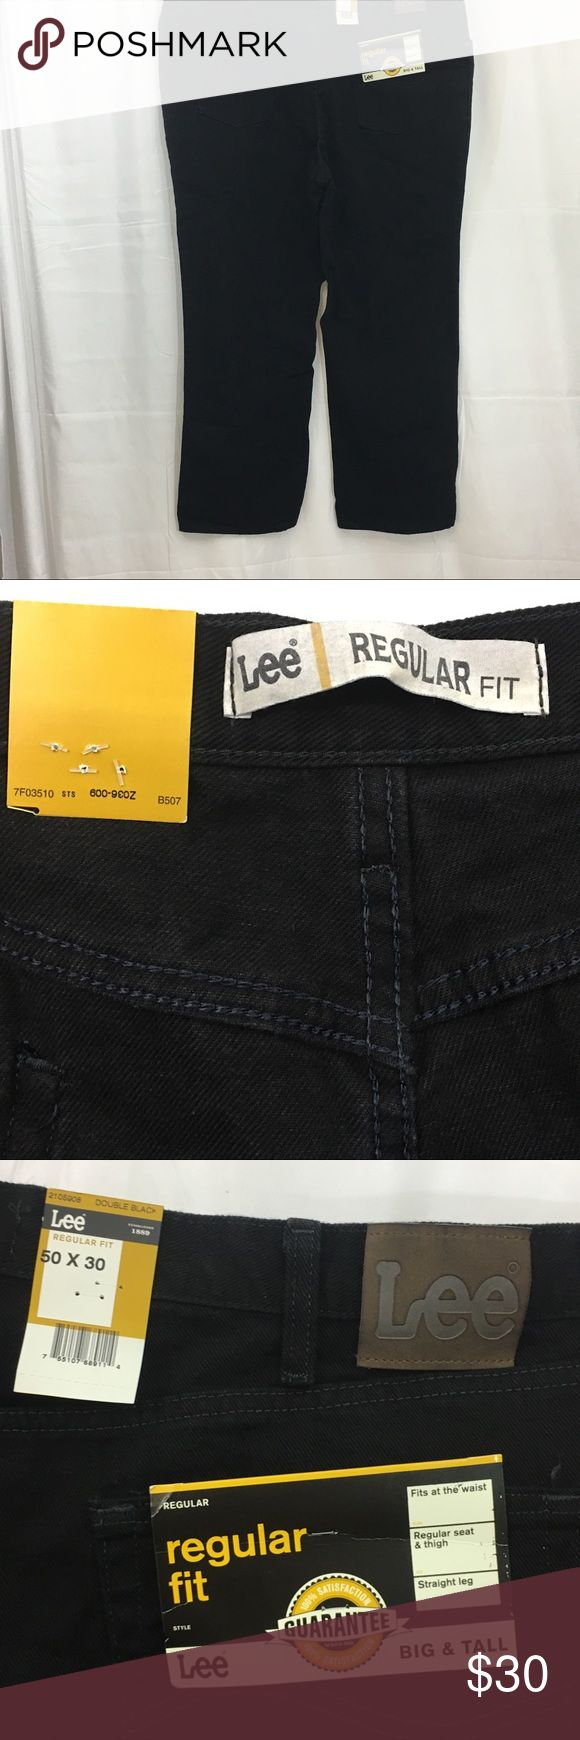 Mens Lee Regular Fit Big & Tall Jeans size 50x30 Mens Lee Regular Fit Big and Tall Blue Denim Jeans Machine washable Measures: 30 inseam 50 waist New with tags Lee Jeans Straight